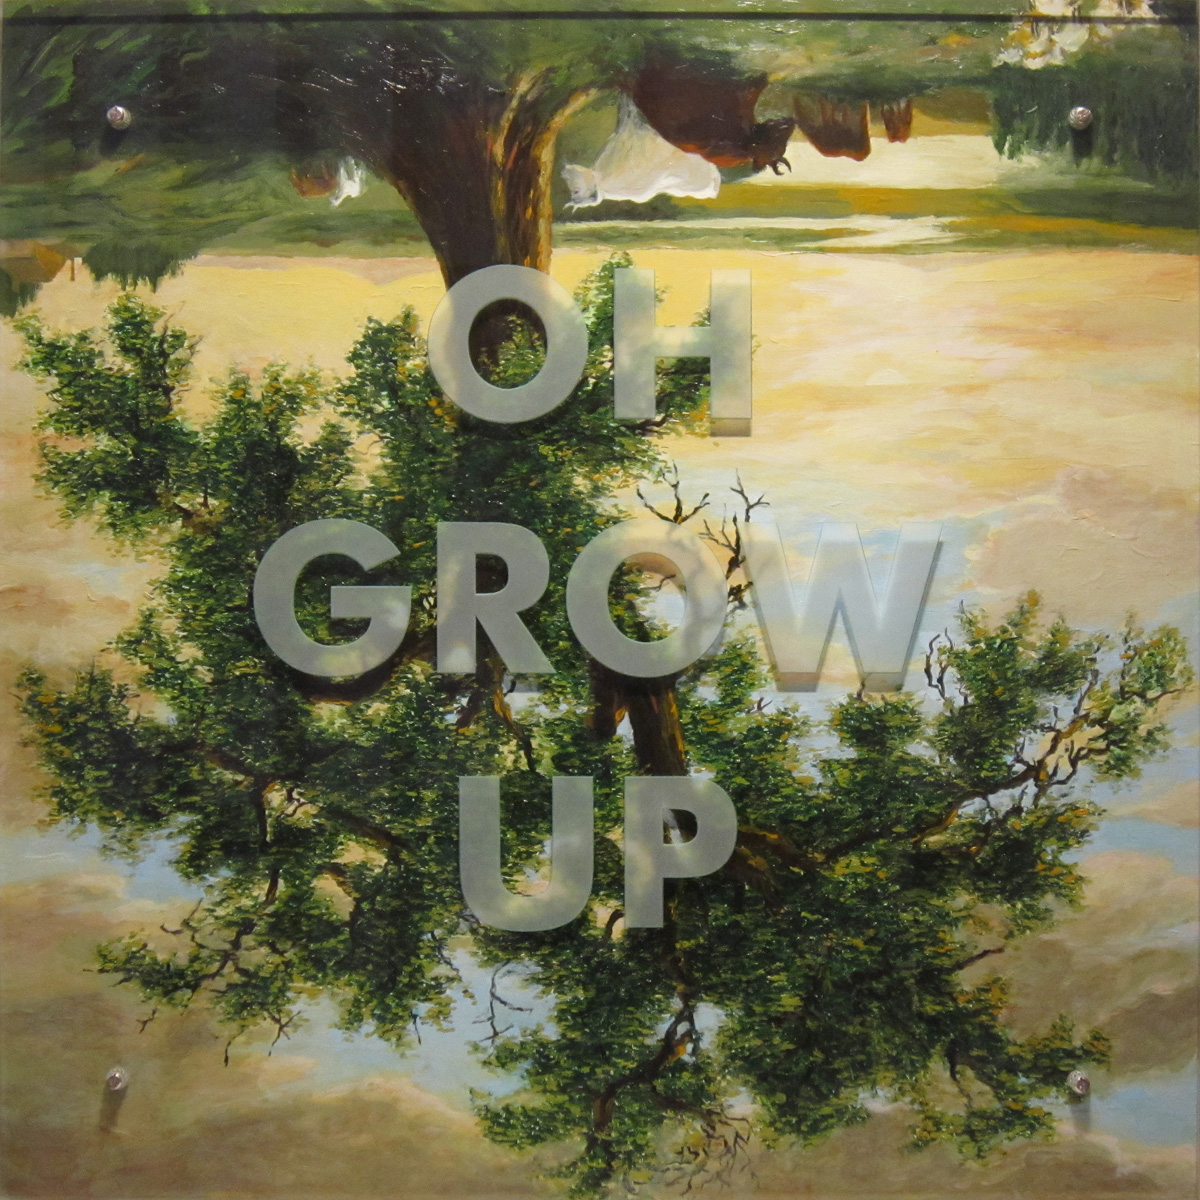 "Ken Aptekar, OH GROW UP, 2011, 35"" x 35"", oil/wood, sandblasted glass, bolts After Asher Durand, The Solitary Oak (The Old Oak), 1844, NY Historical Society"